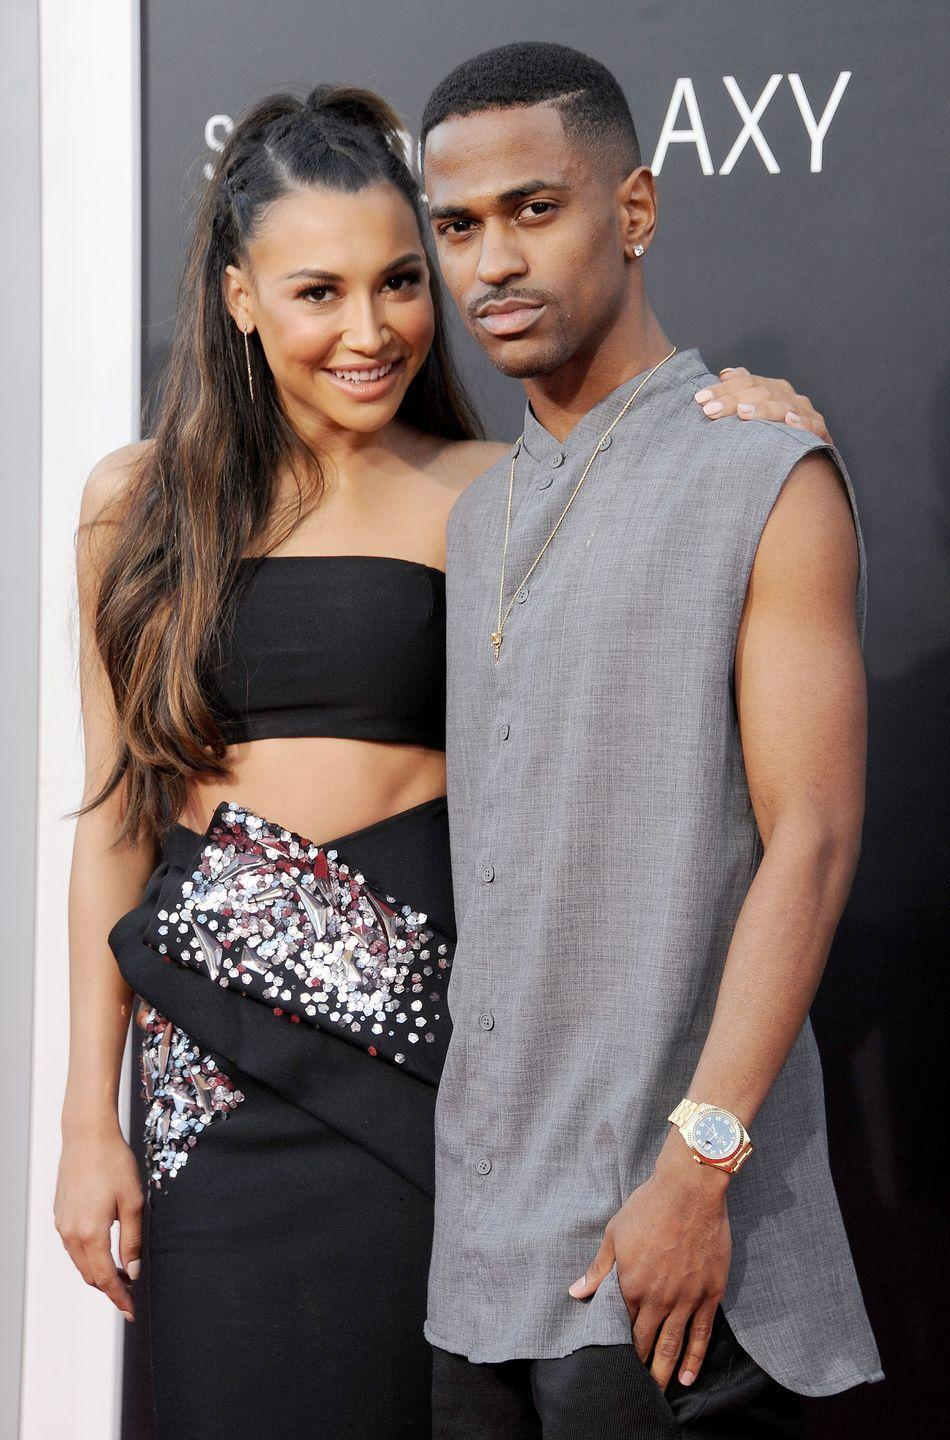 """<p>The couple met on Twitter and began dating in 2013, getting engaged that October. The rapper then called off their engagement in April 2014. """"I learned that I was no longer getting married from the internet, and at the same time as the rest of the world,"""" Rivera <a href=""""http://www.dailymail.co.uk/tvshowbiz/article-3788557/Naya-Rivera-claims-Big-Sean-called-wedding-caught-Ariana-Grande.html"""" rel=""""nofollow noopener"""" target=""""_blank"""" data-ylk=""""slk:wrote in her autobiography"""" class=""""link rapid-noclick-resp"""">wrote in her autobiography</a> <em>Sorry Not Sorry</em><span class=""""redactor-invisible-space"""">. """"</span>Not only were we no longer getting married, but apparently we weren't even together anymore.""""</p>"""